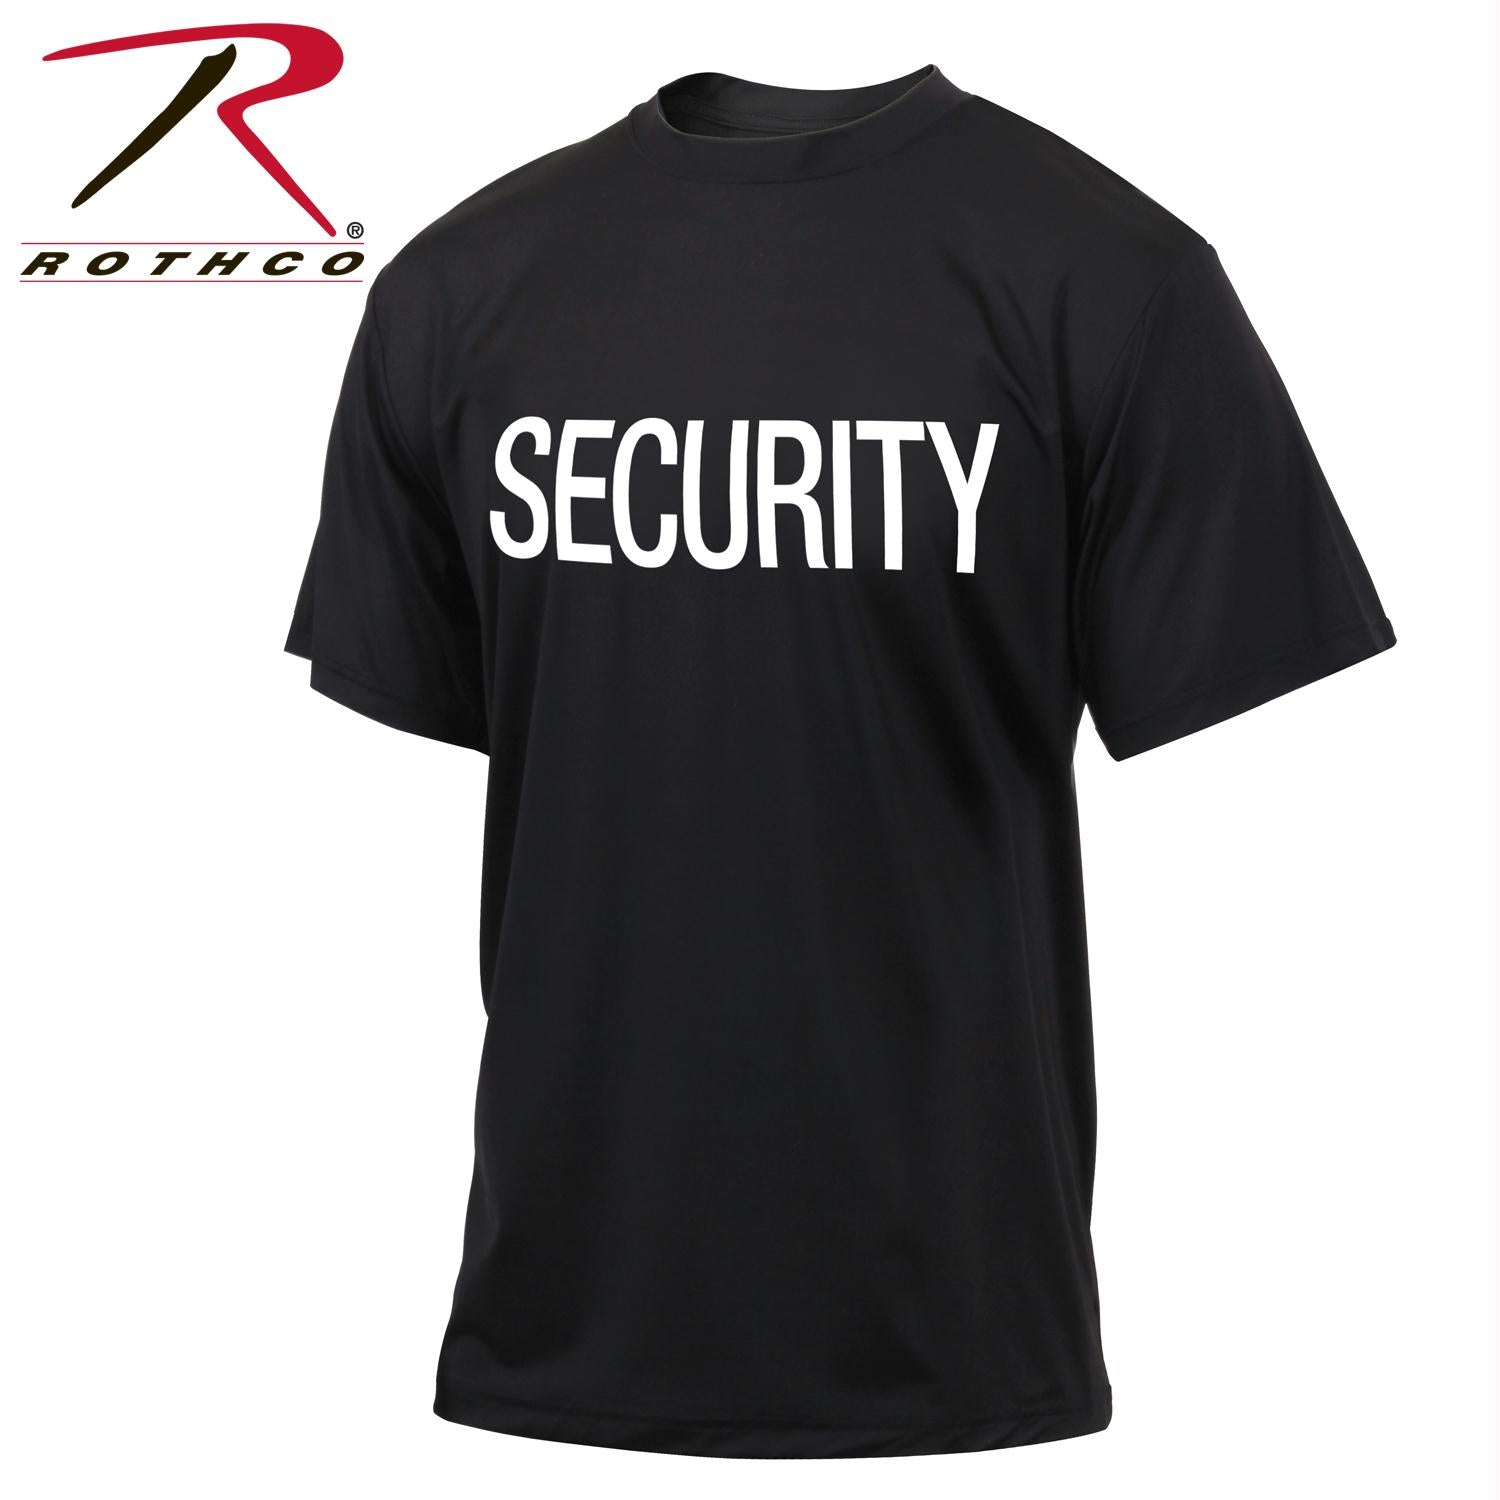 Rothco Quick Dry Performance Security T-Shirt - Black / 3XL